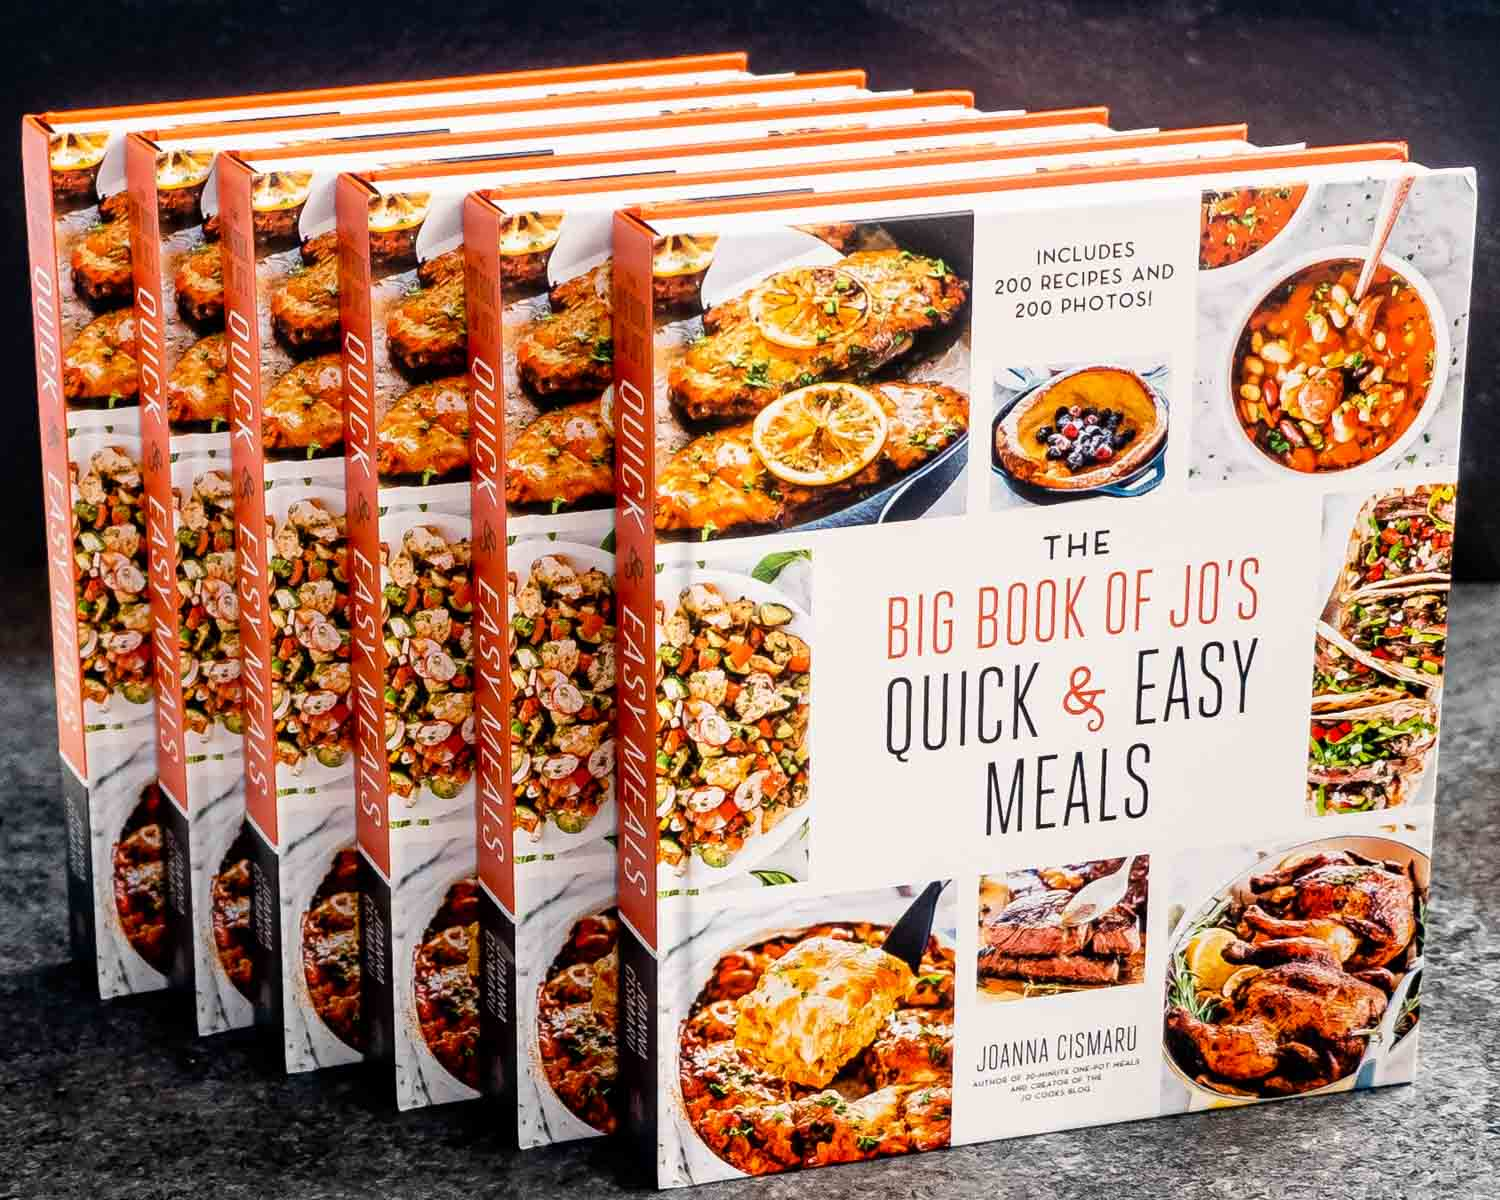 the big book of jo's quick and easy meals